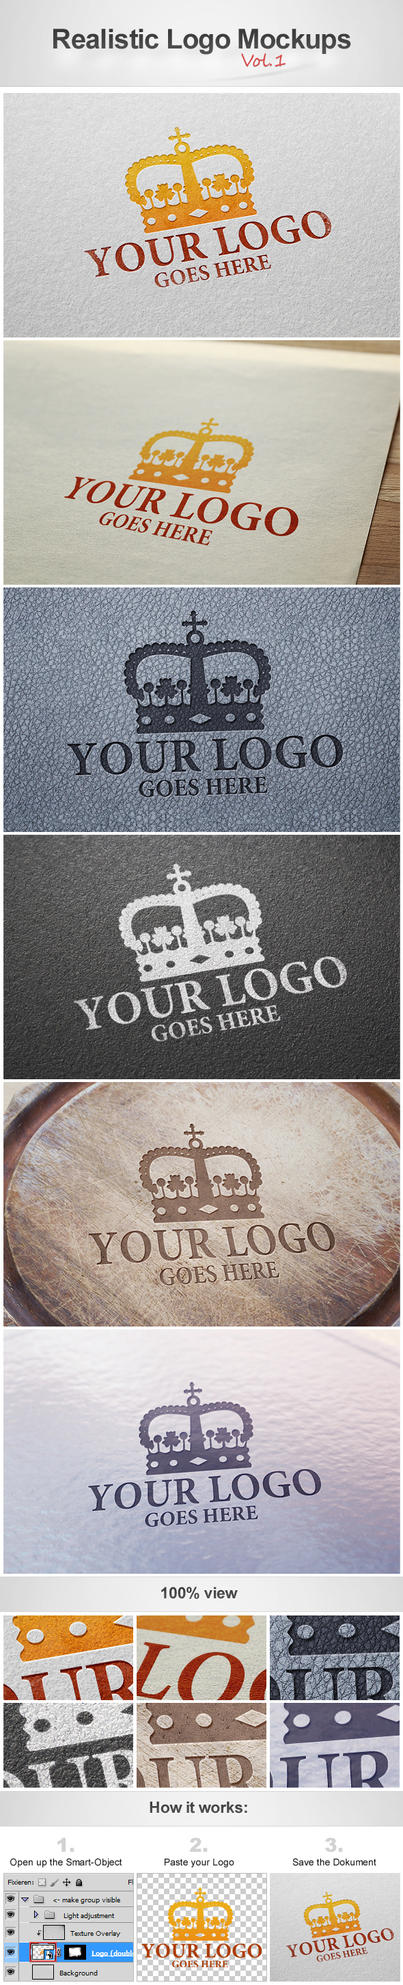 Realistic Logo Mockups Vol.1 by h3design